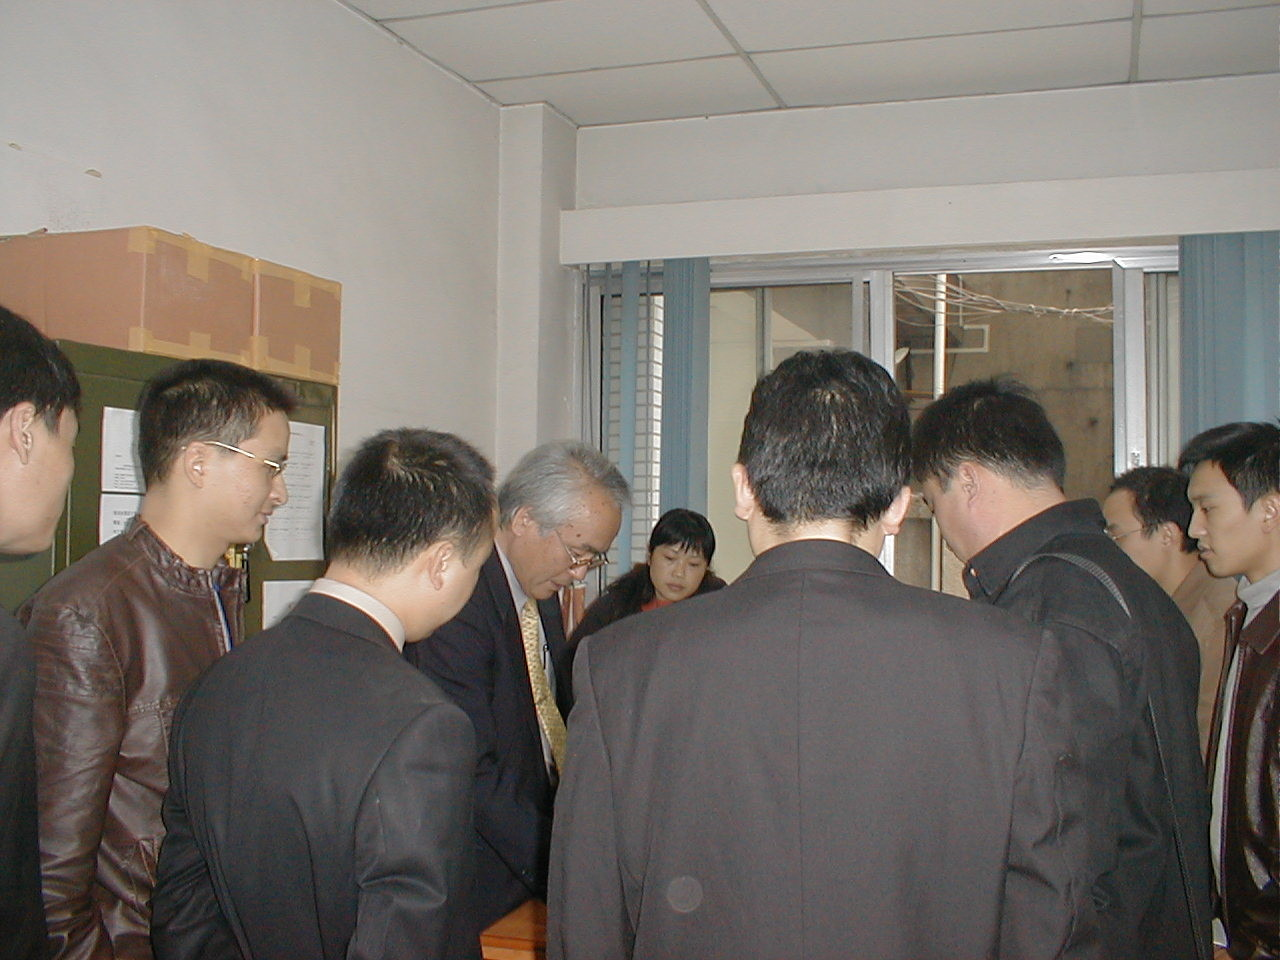 2004, Visit to Sichuan province to introduce the electricity saving technology of my own